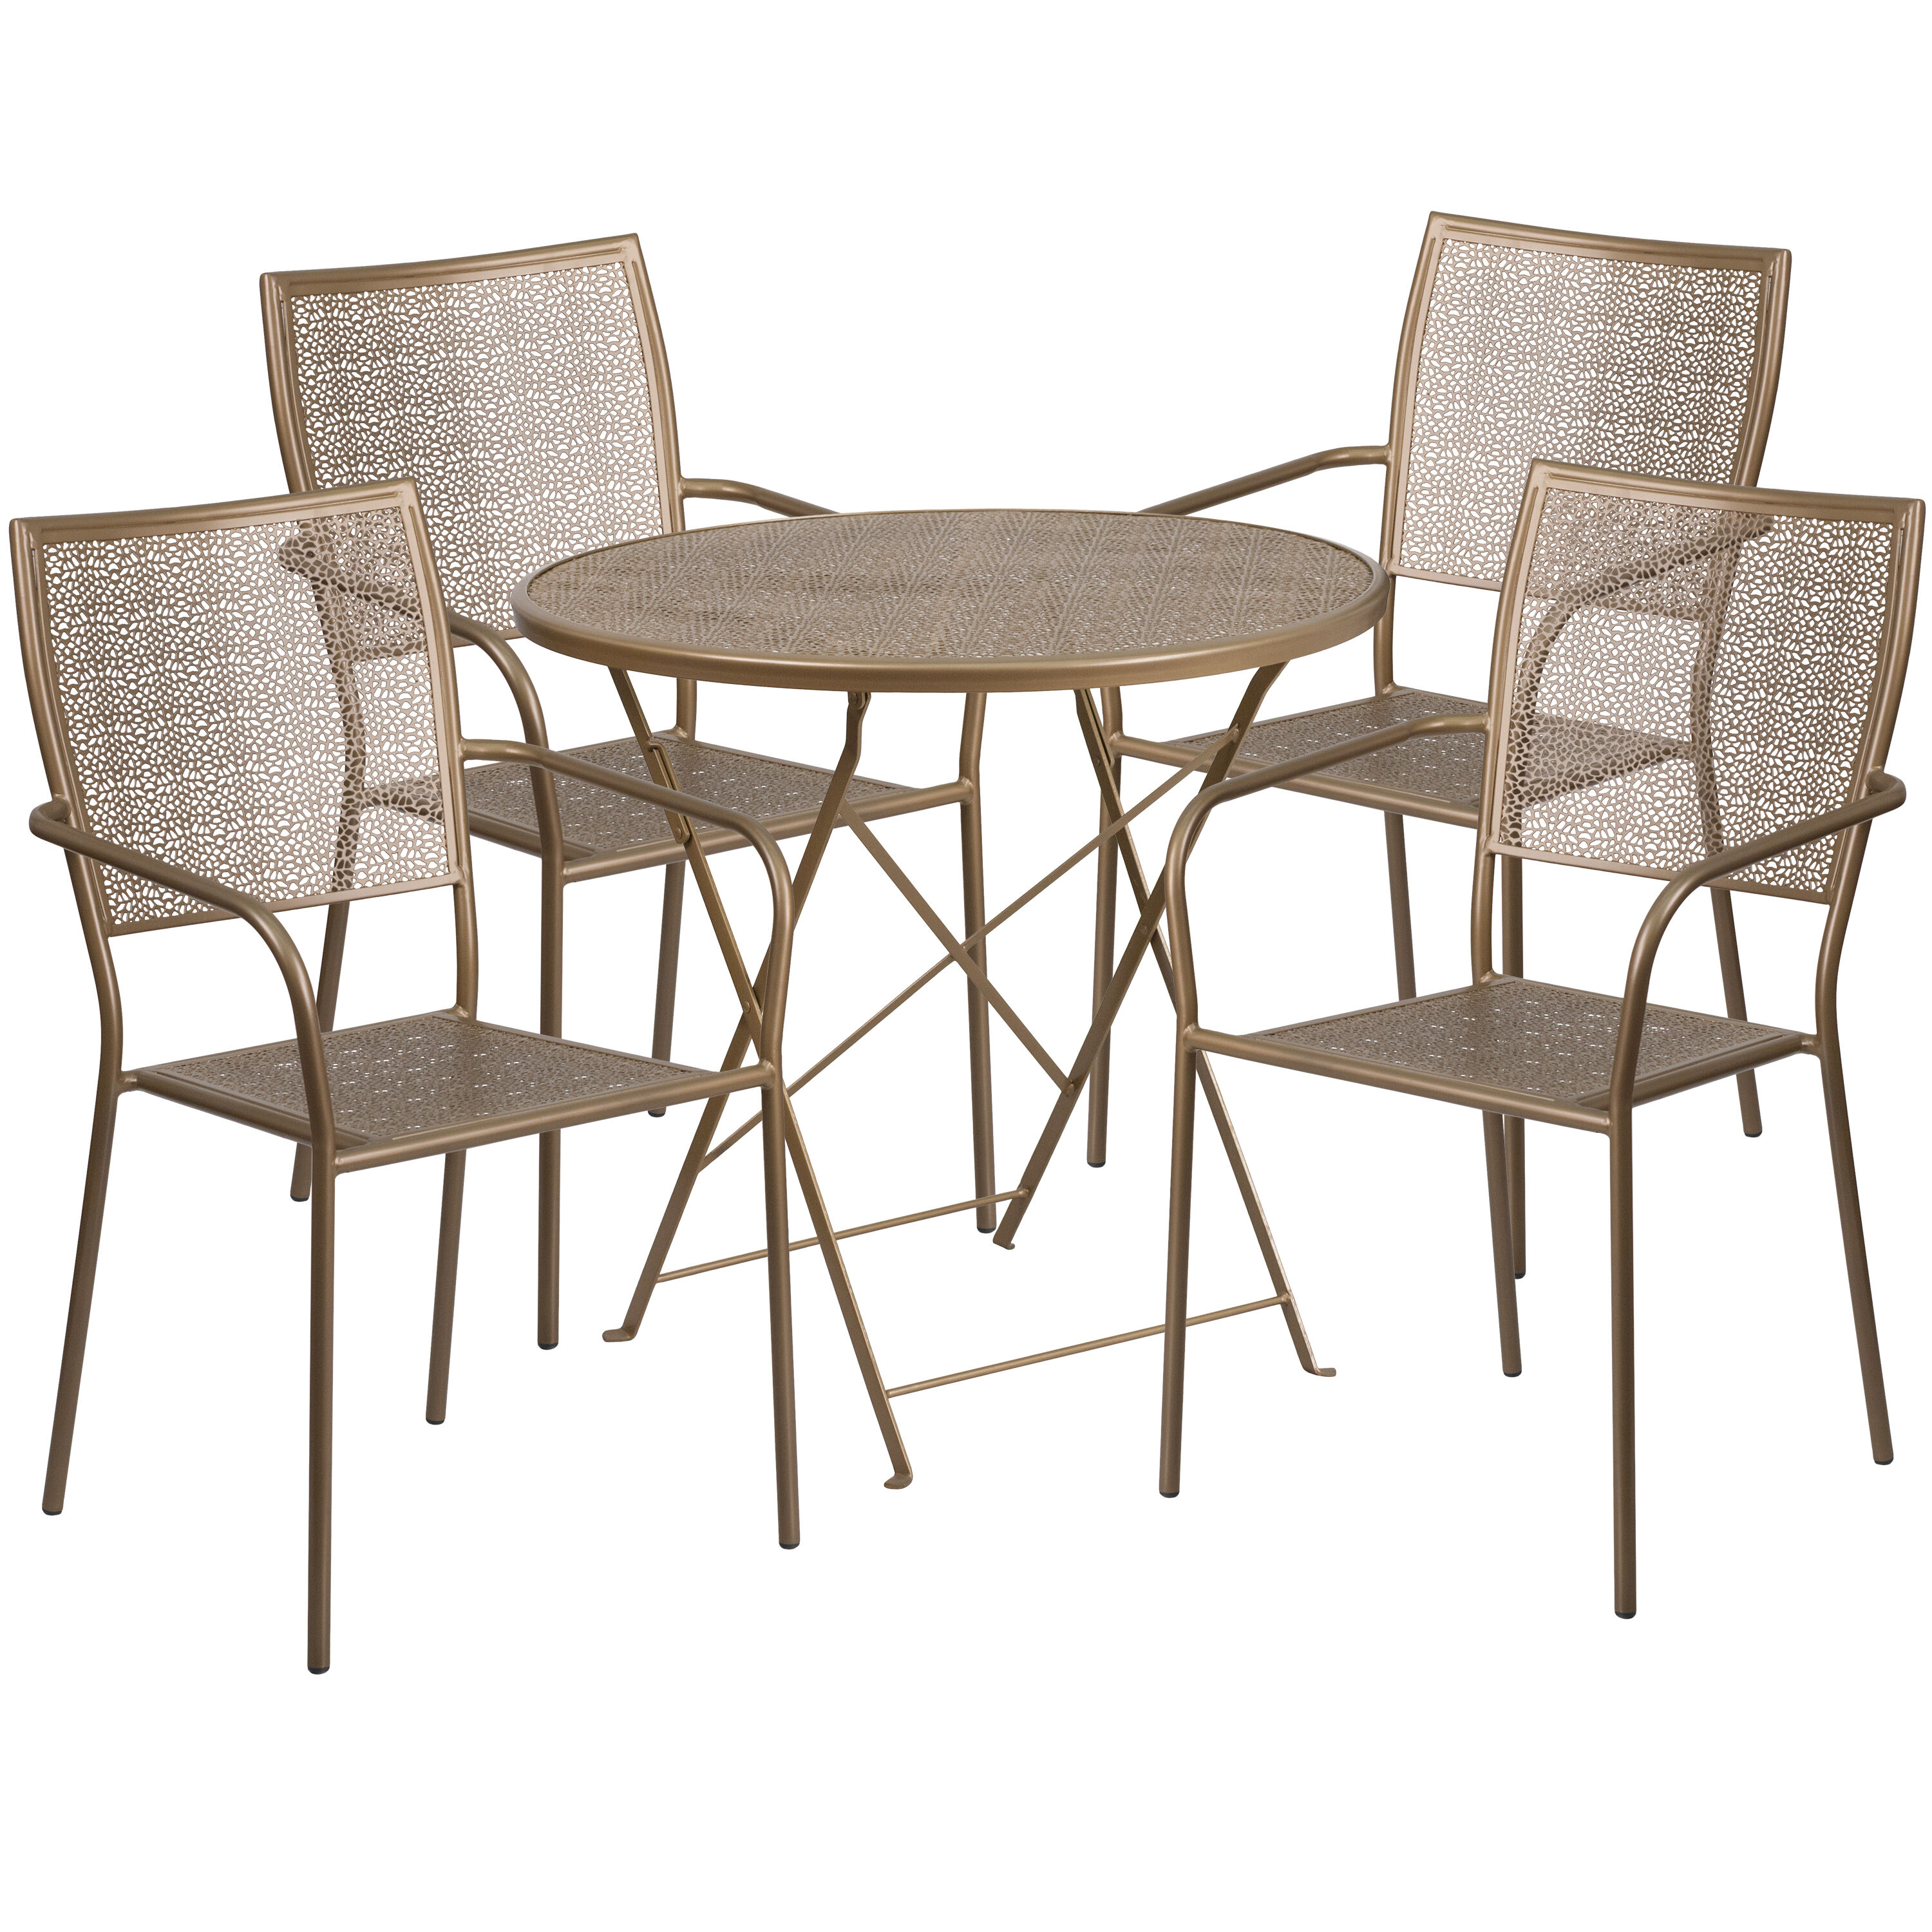 ... Our 30u0027u0027 Round Gold Indoor Outdoor Steel Folding Patio Table Set With 4